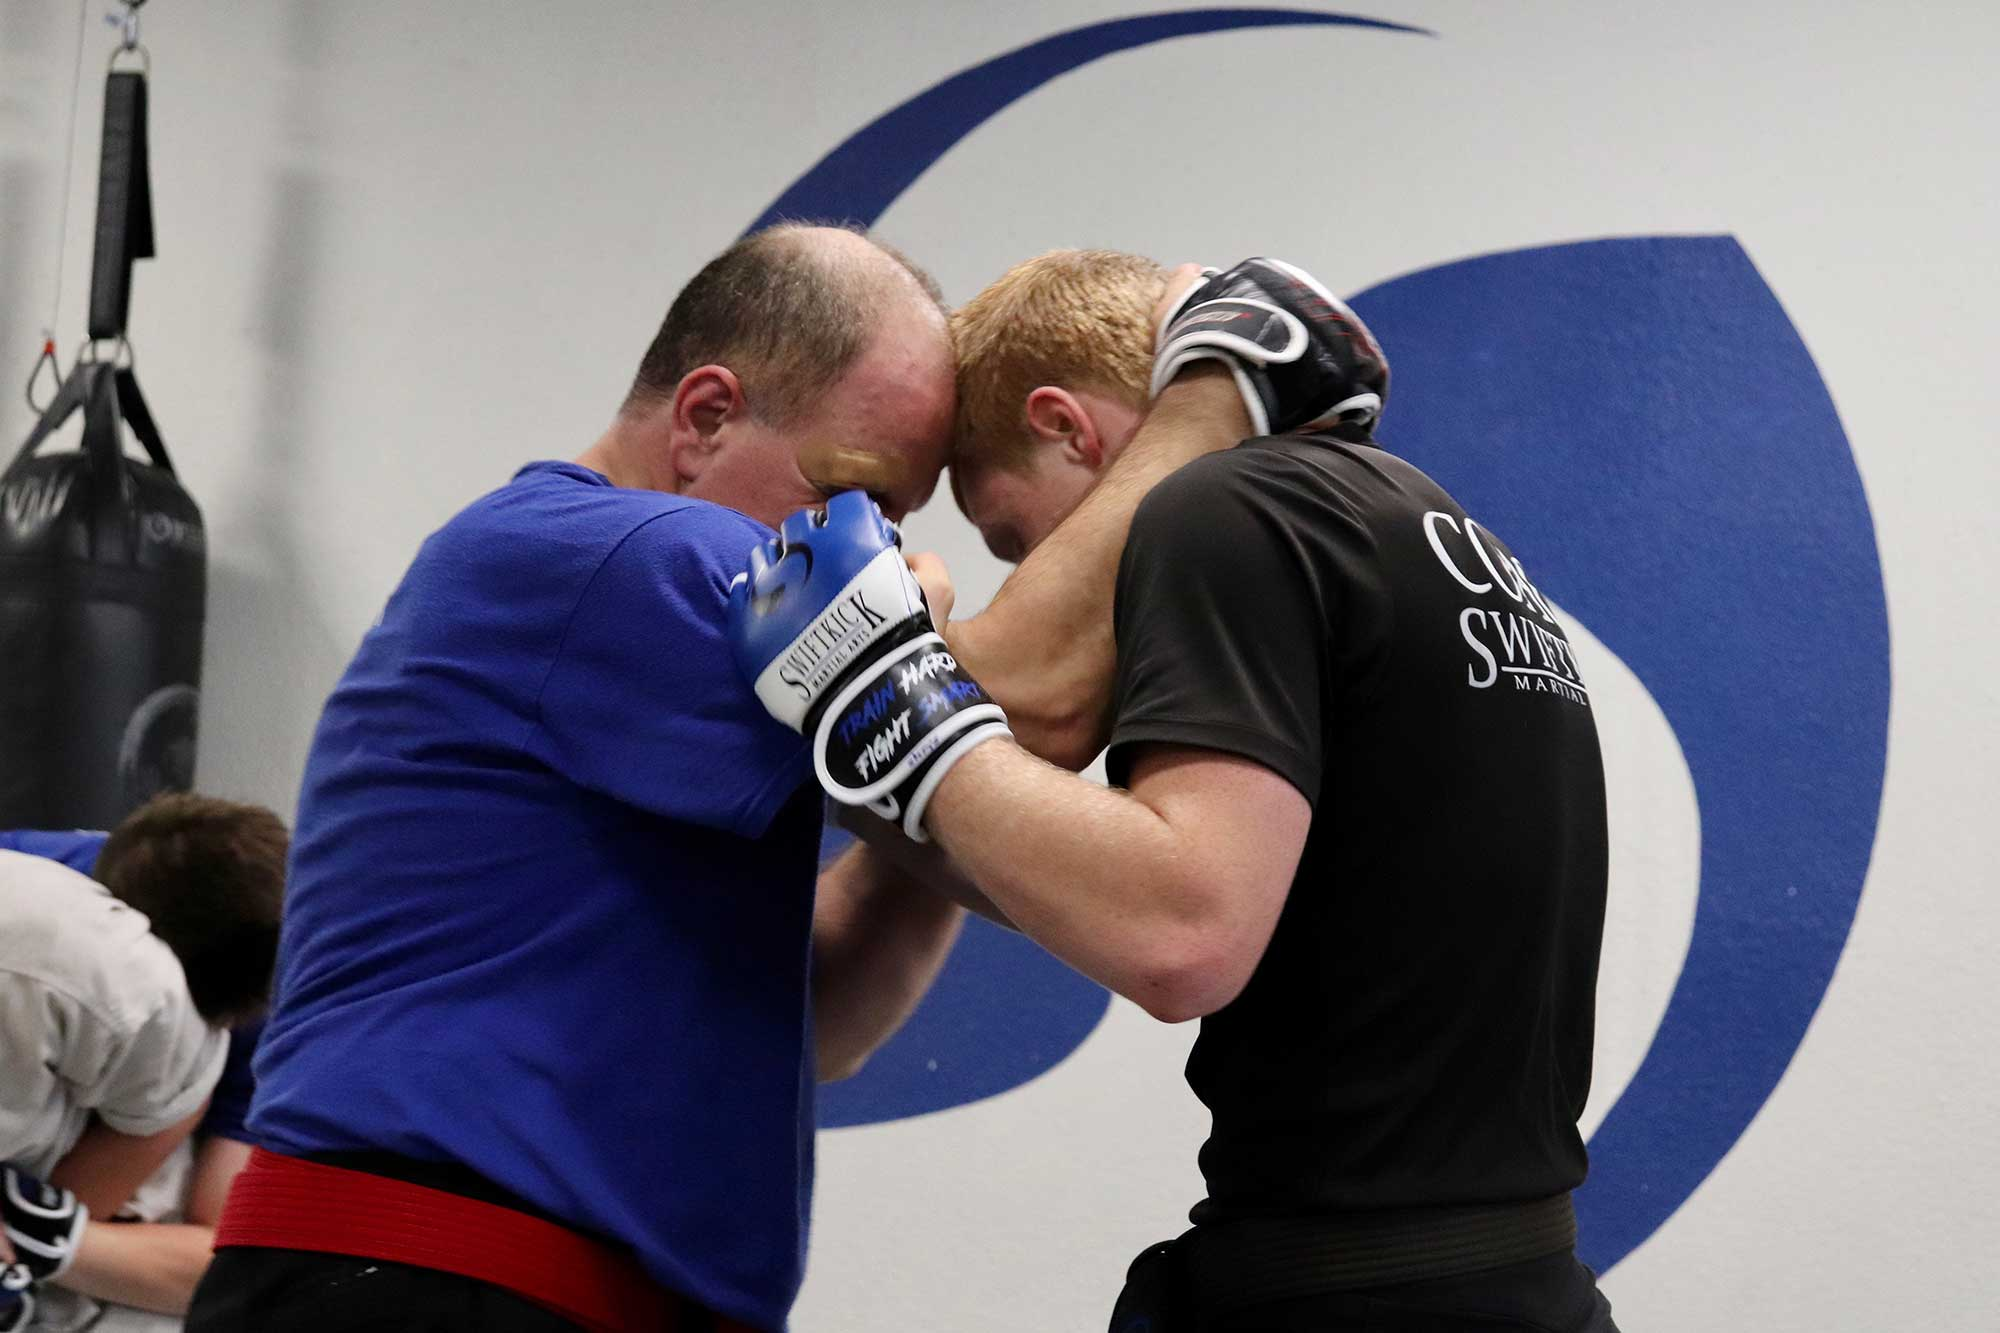 martial arts physical fitness